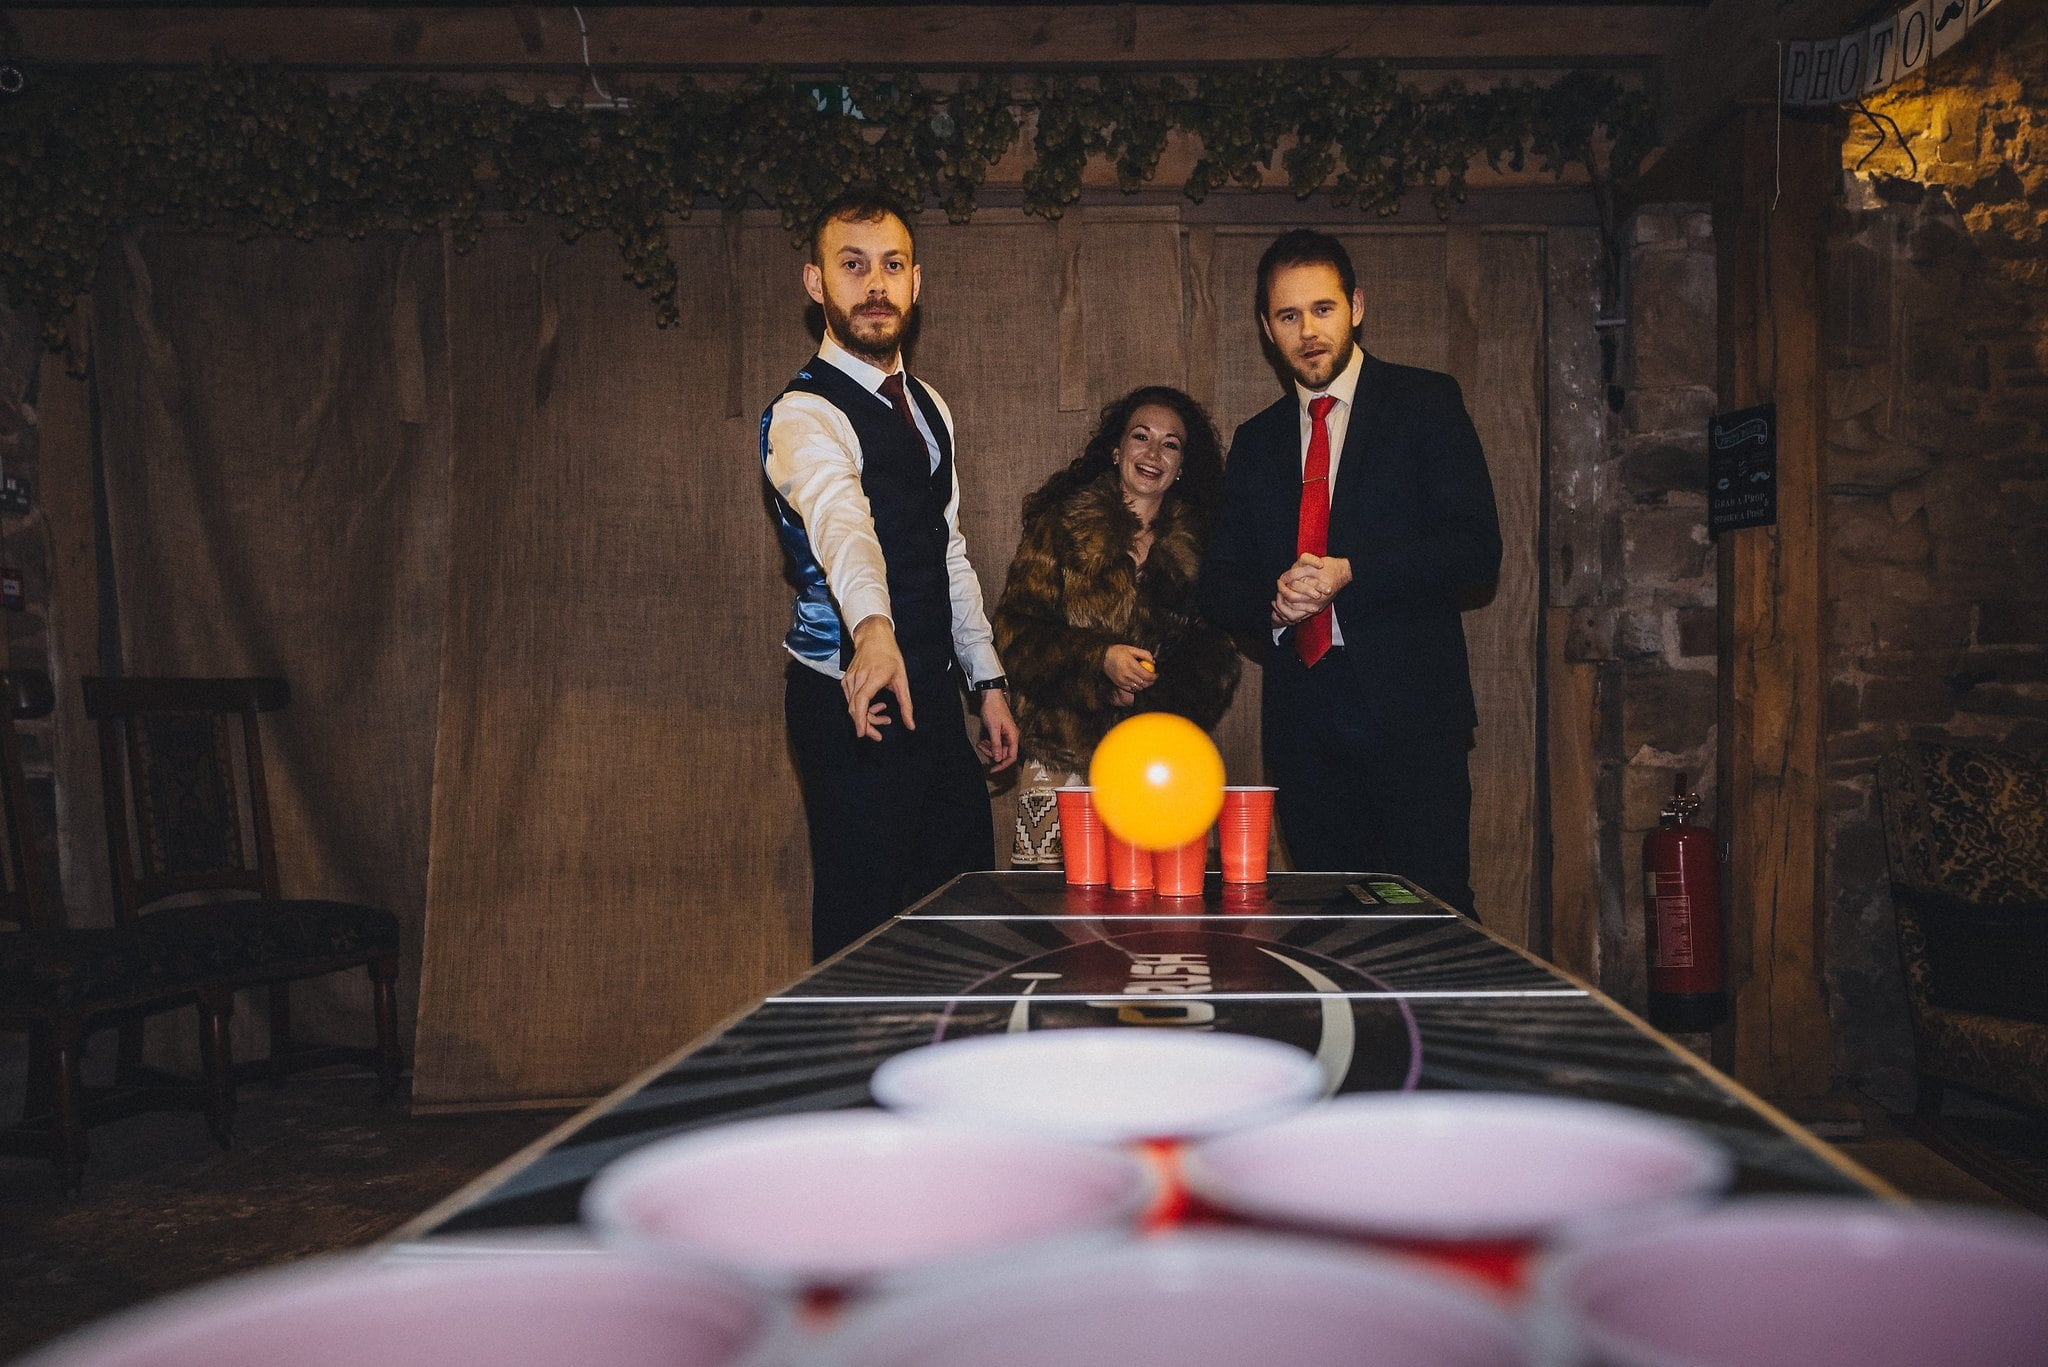 Beer pong action at Lyde Court winter wedding